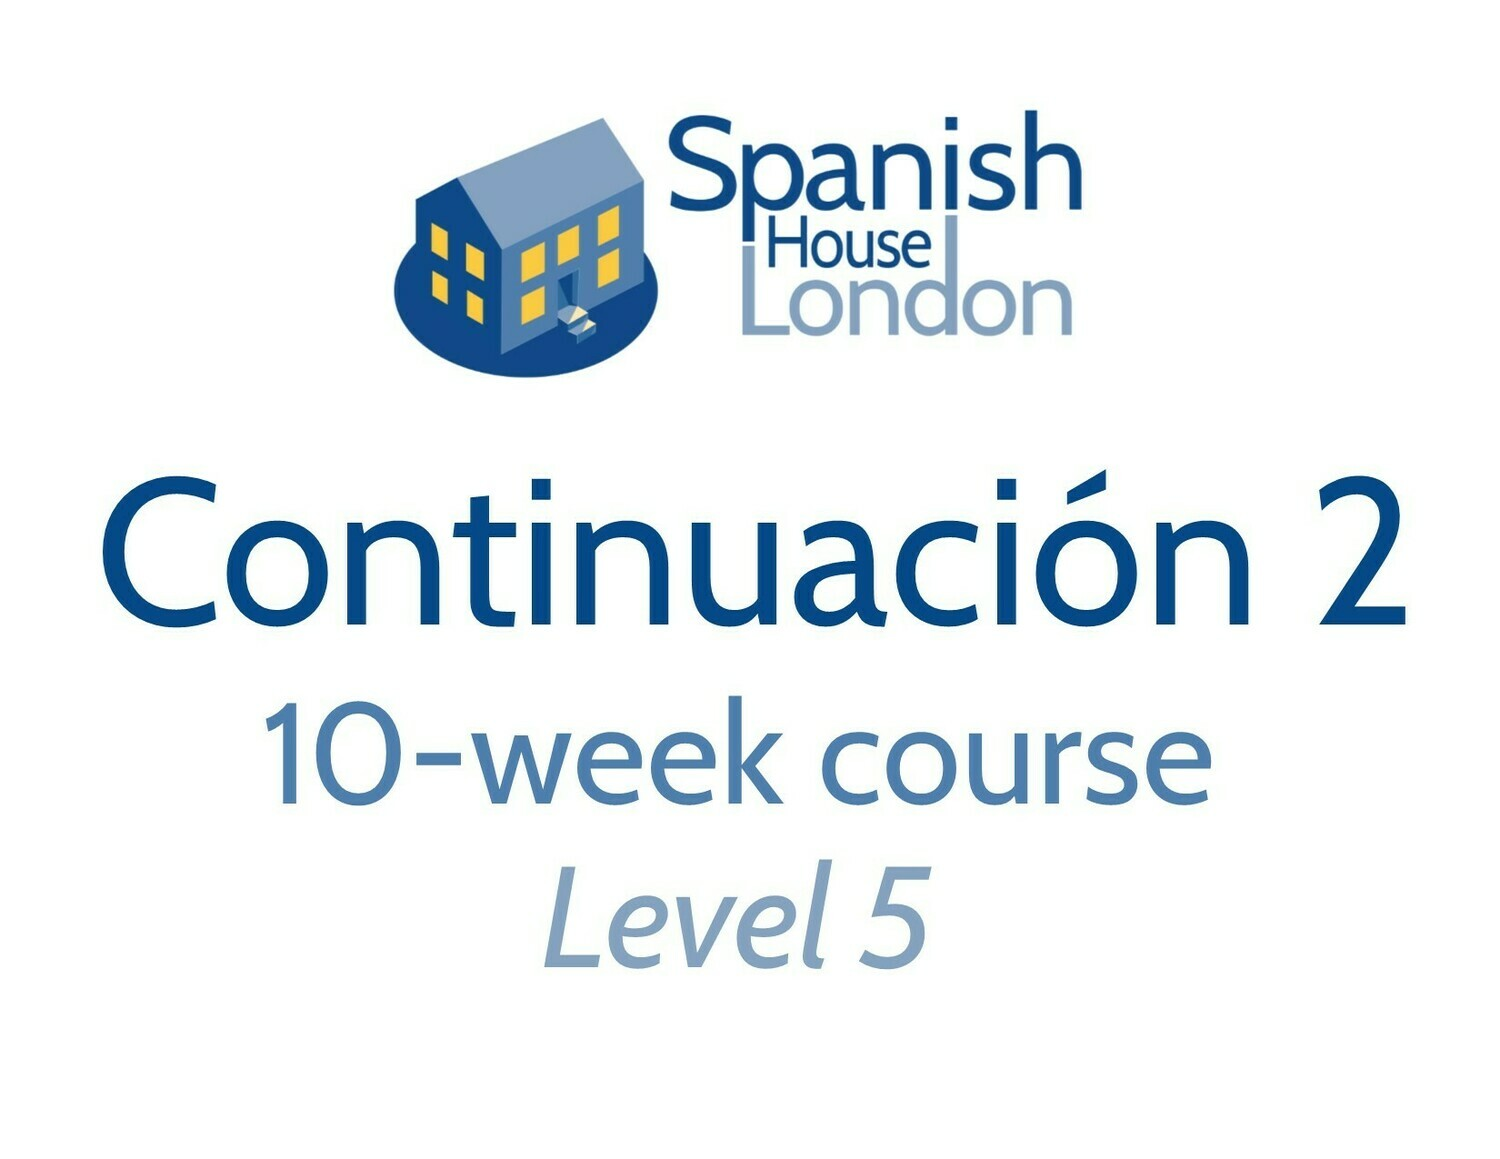 Continuacion 2 Course starting on 2nd November at 6pm in Clapham North